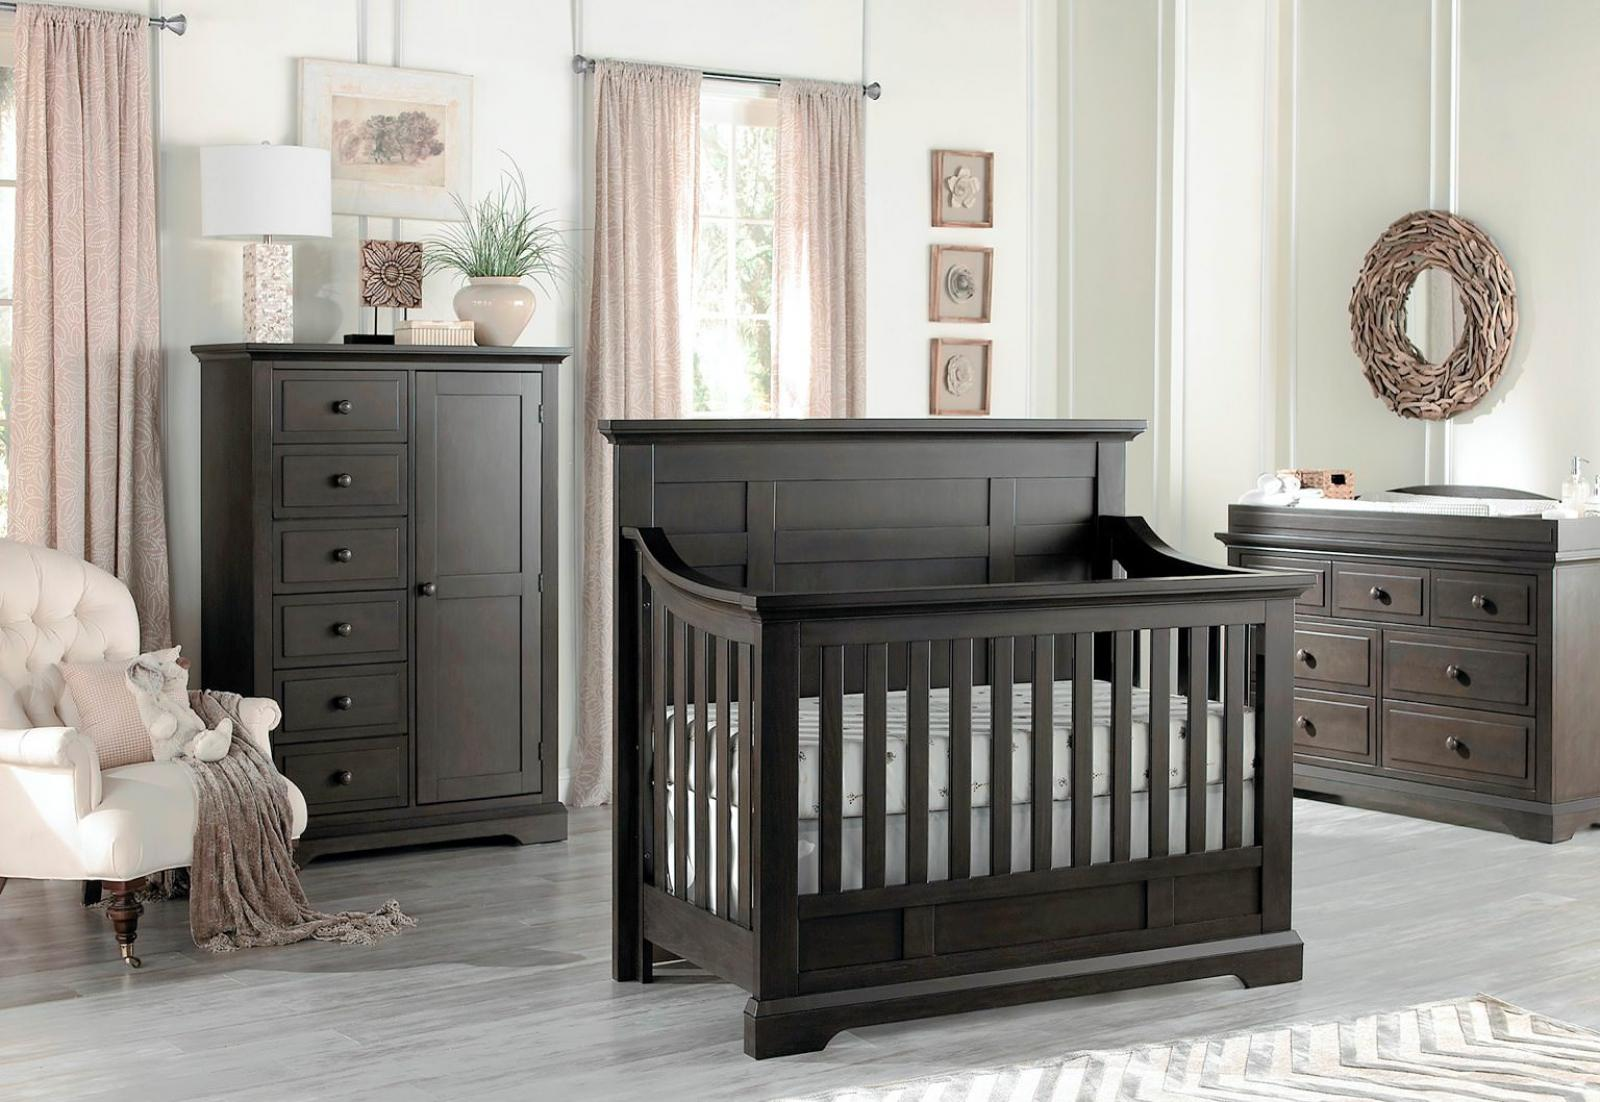 Dallas Collection Crib